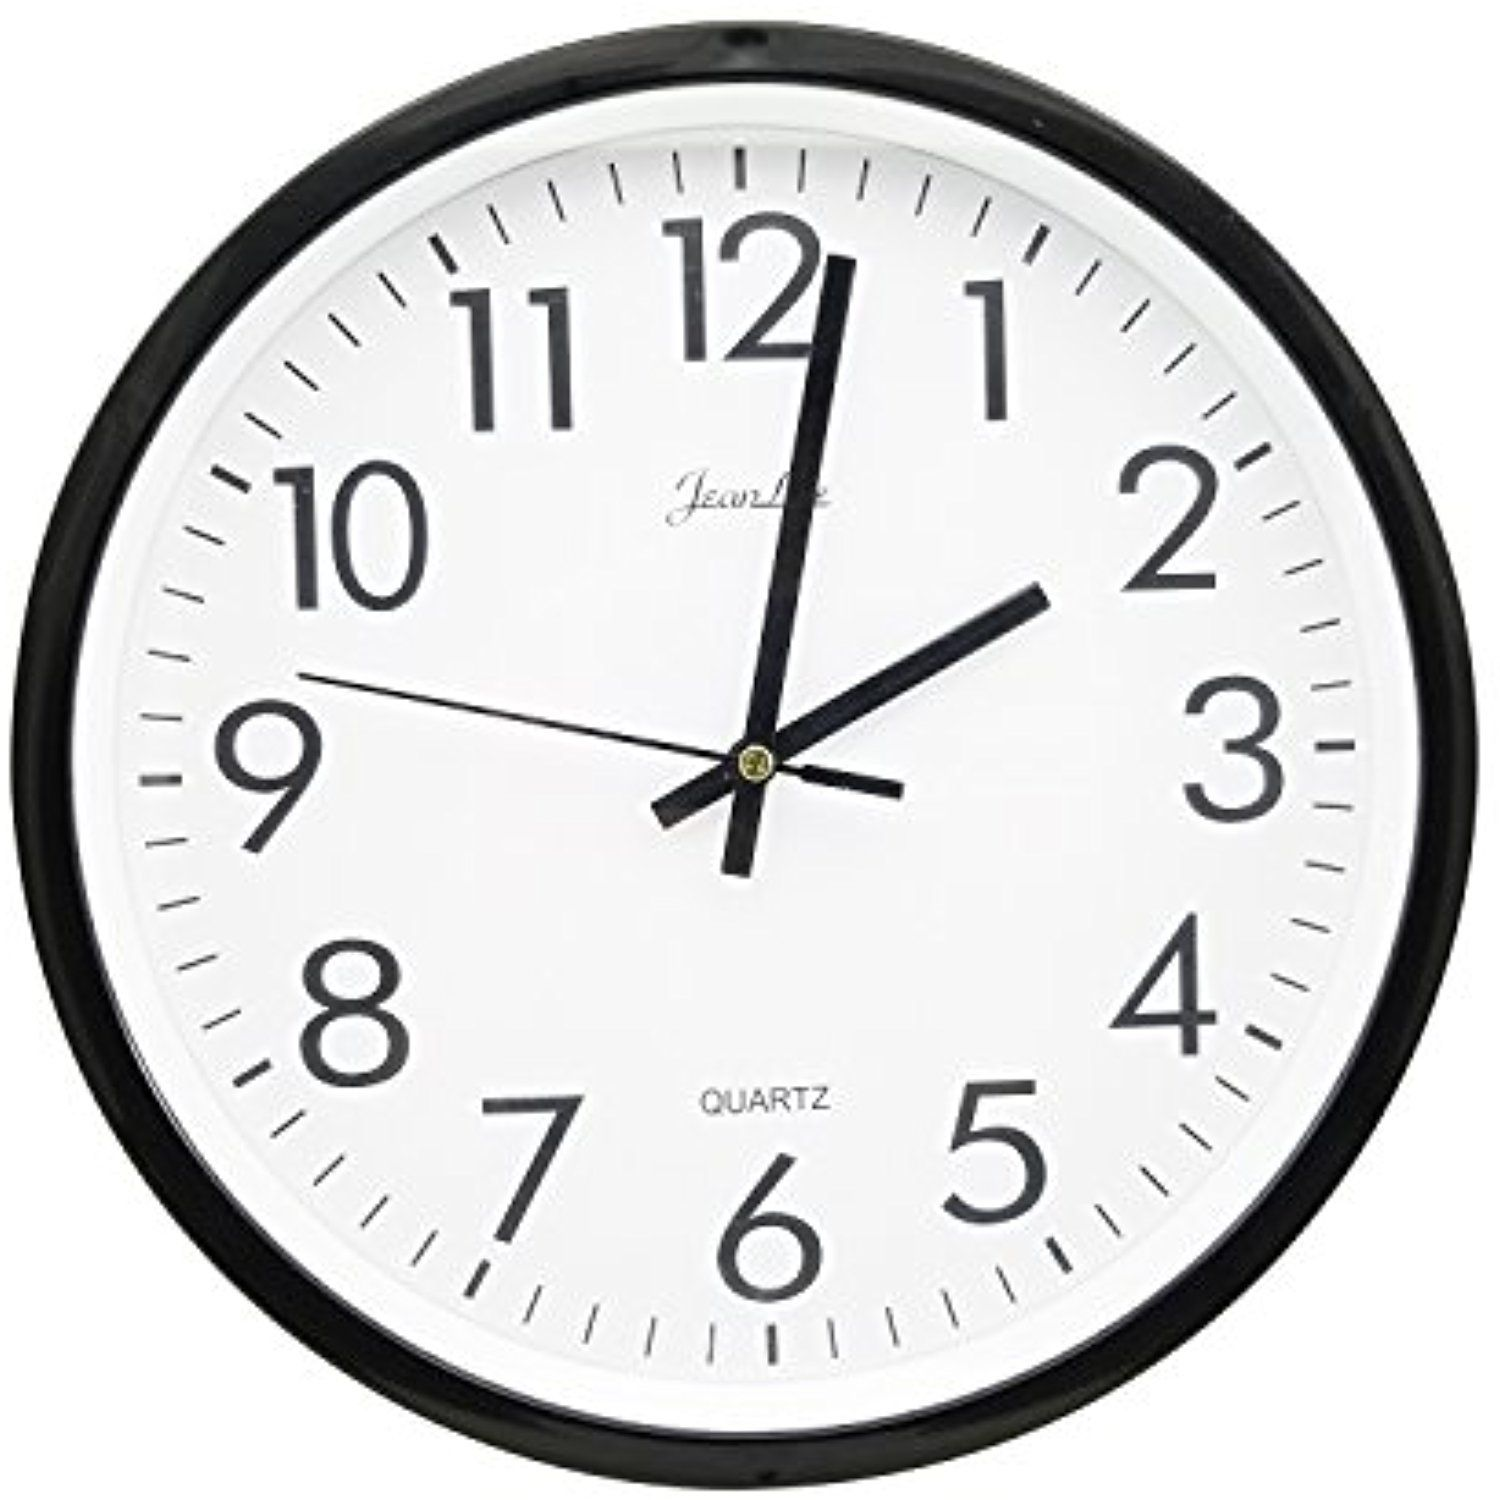 Dgq 10 Inch Black Wall Clock Silent Non Ticking Quality Quartz Battery Operated Round Easy To Read Home Office School Clock Black Wall Clock Clock Wall Clock